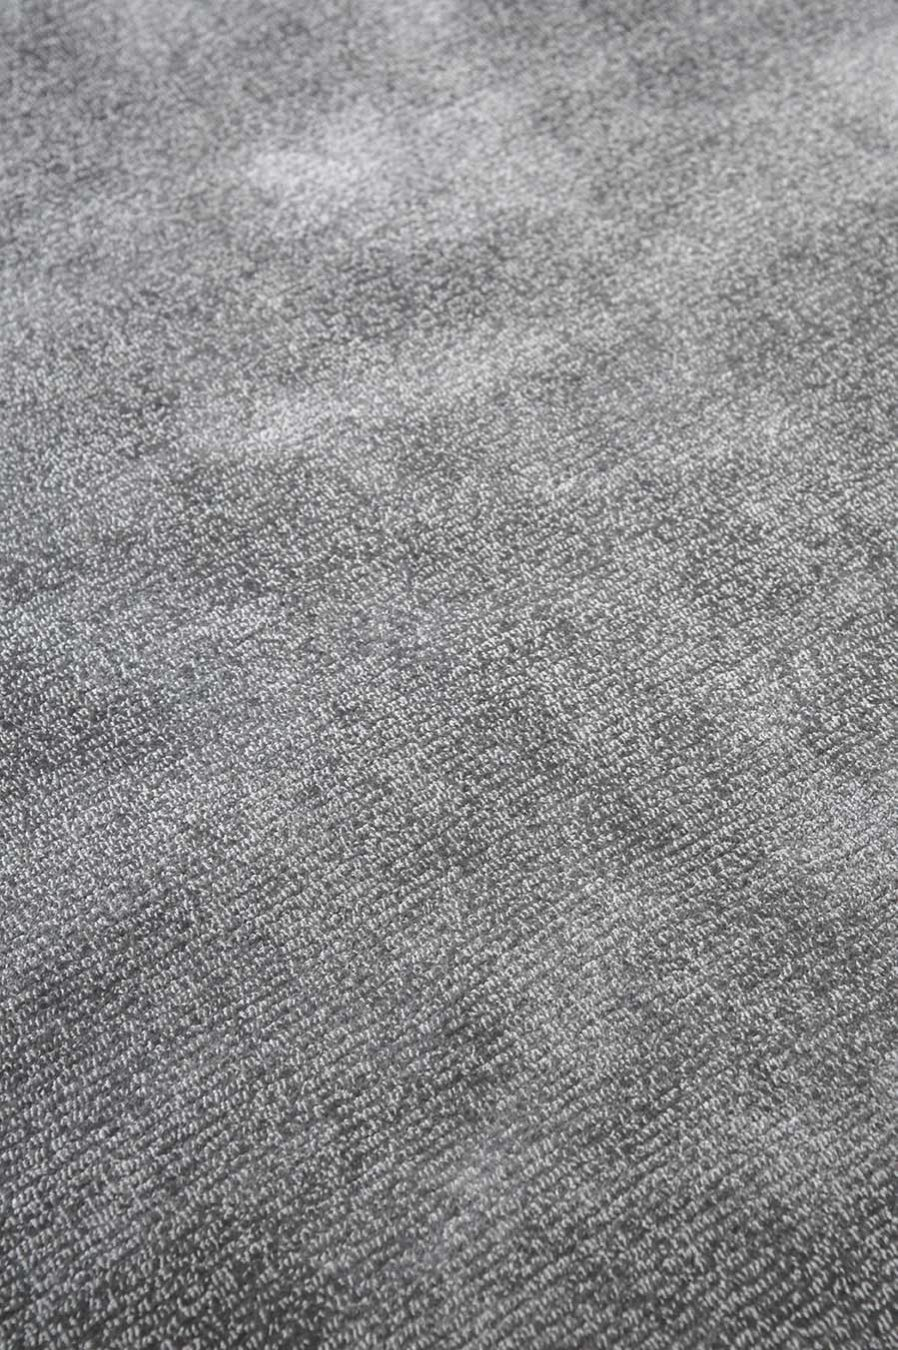 Close up view of textured Carlton rug in grey colour